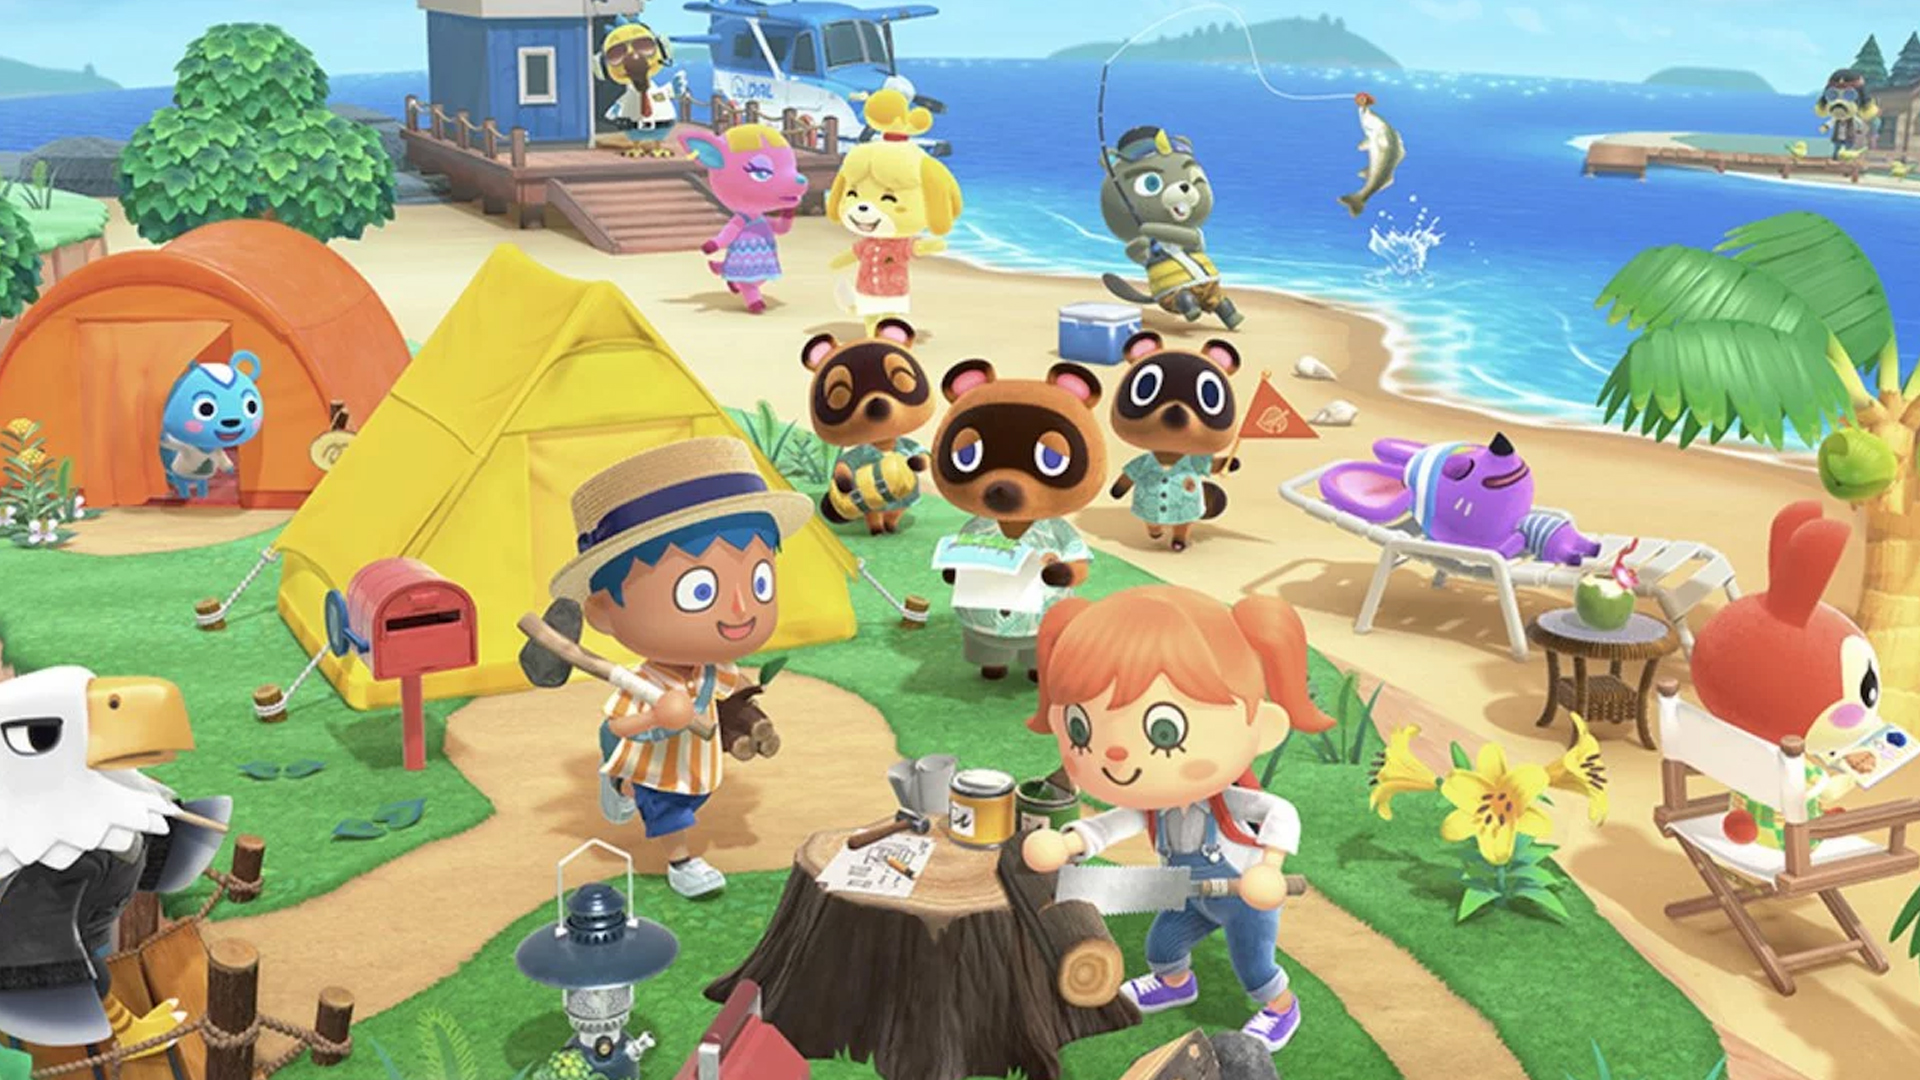 New features to get excited about in Animal Crossing: New Horizons